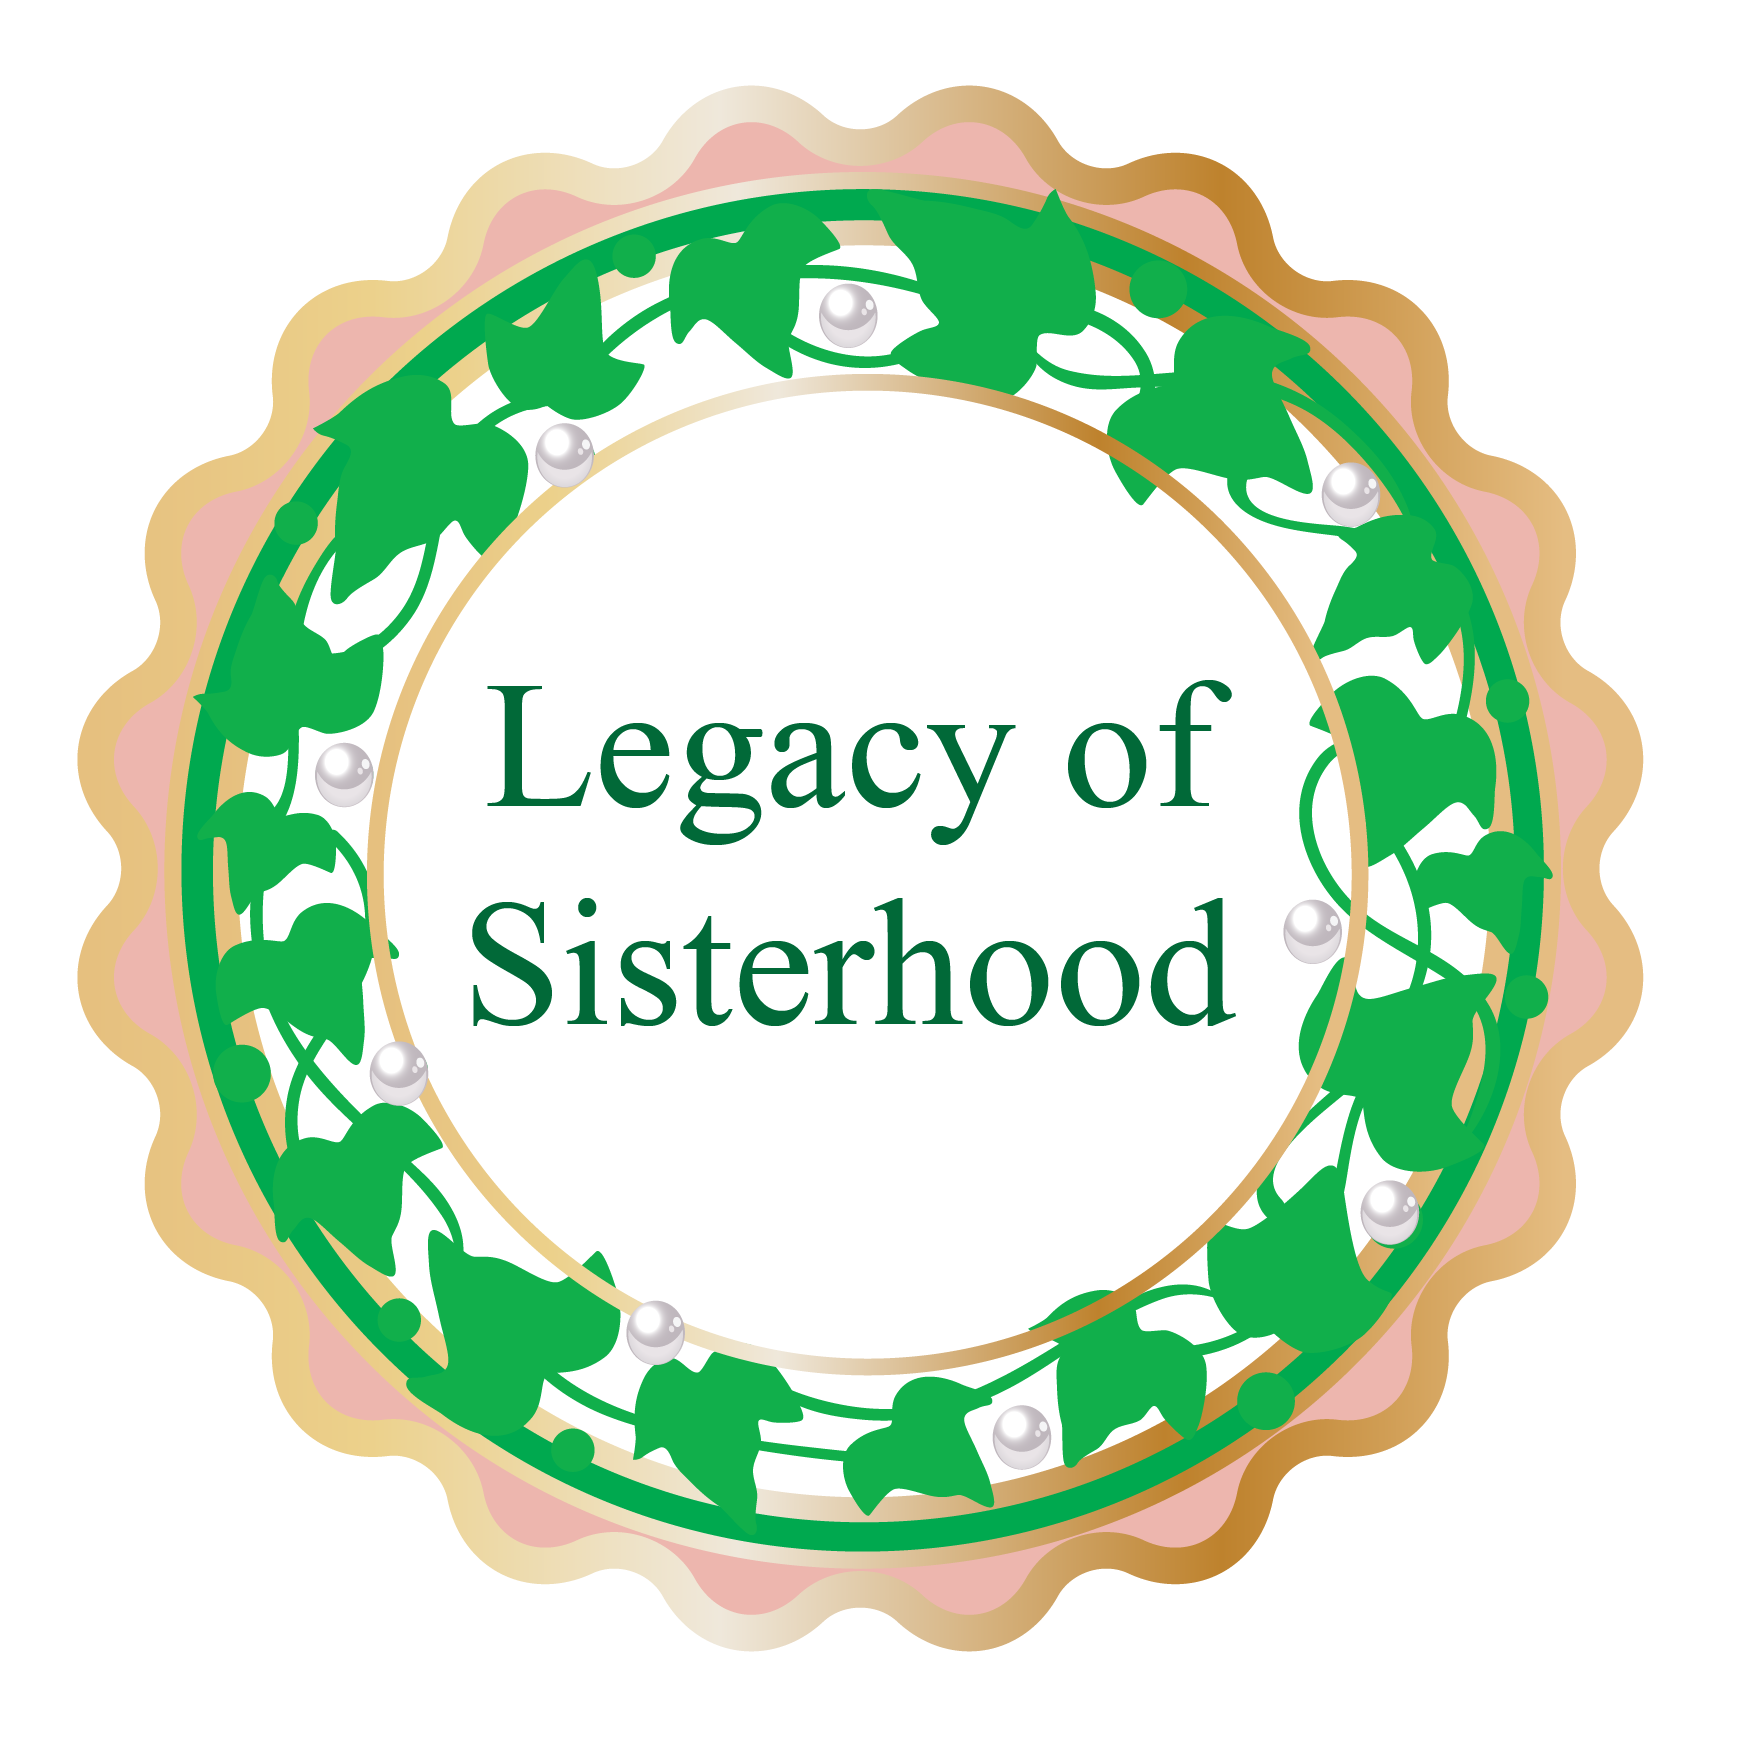 Legacy of Sisterhood